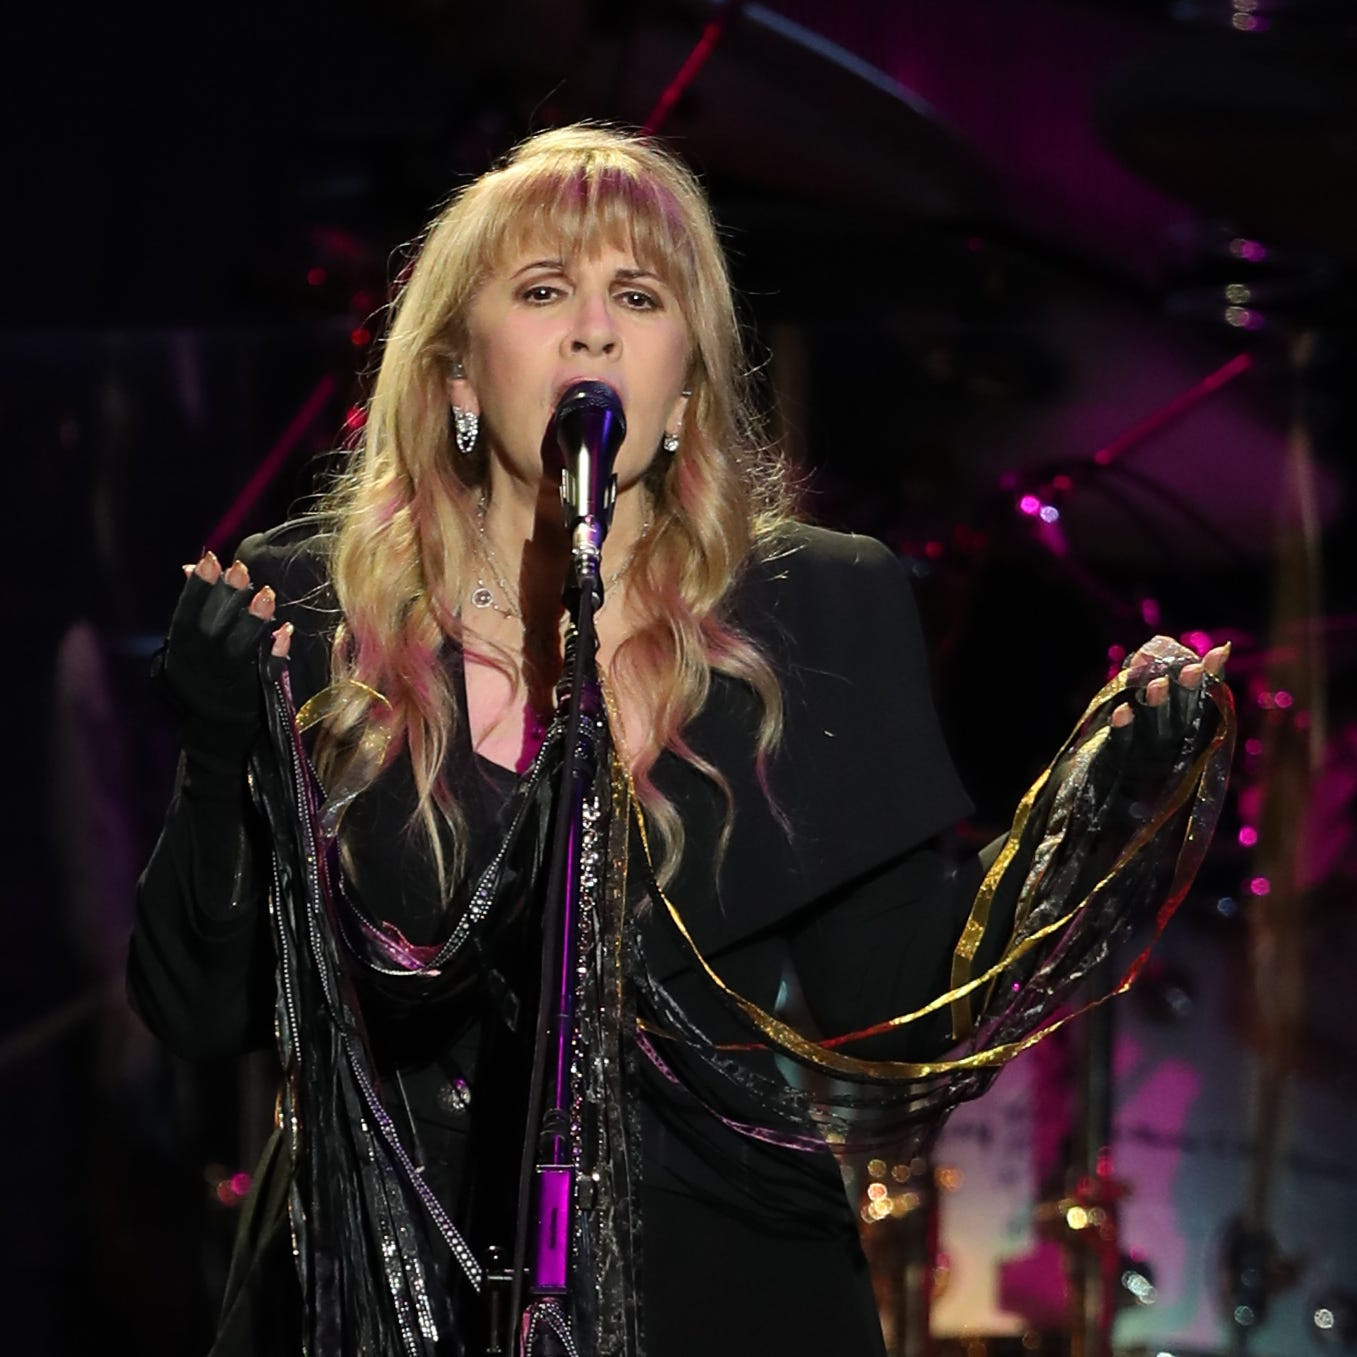 Fleetwood Mac pays tribute to Tom Petty at Des Moines concert